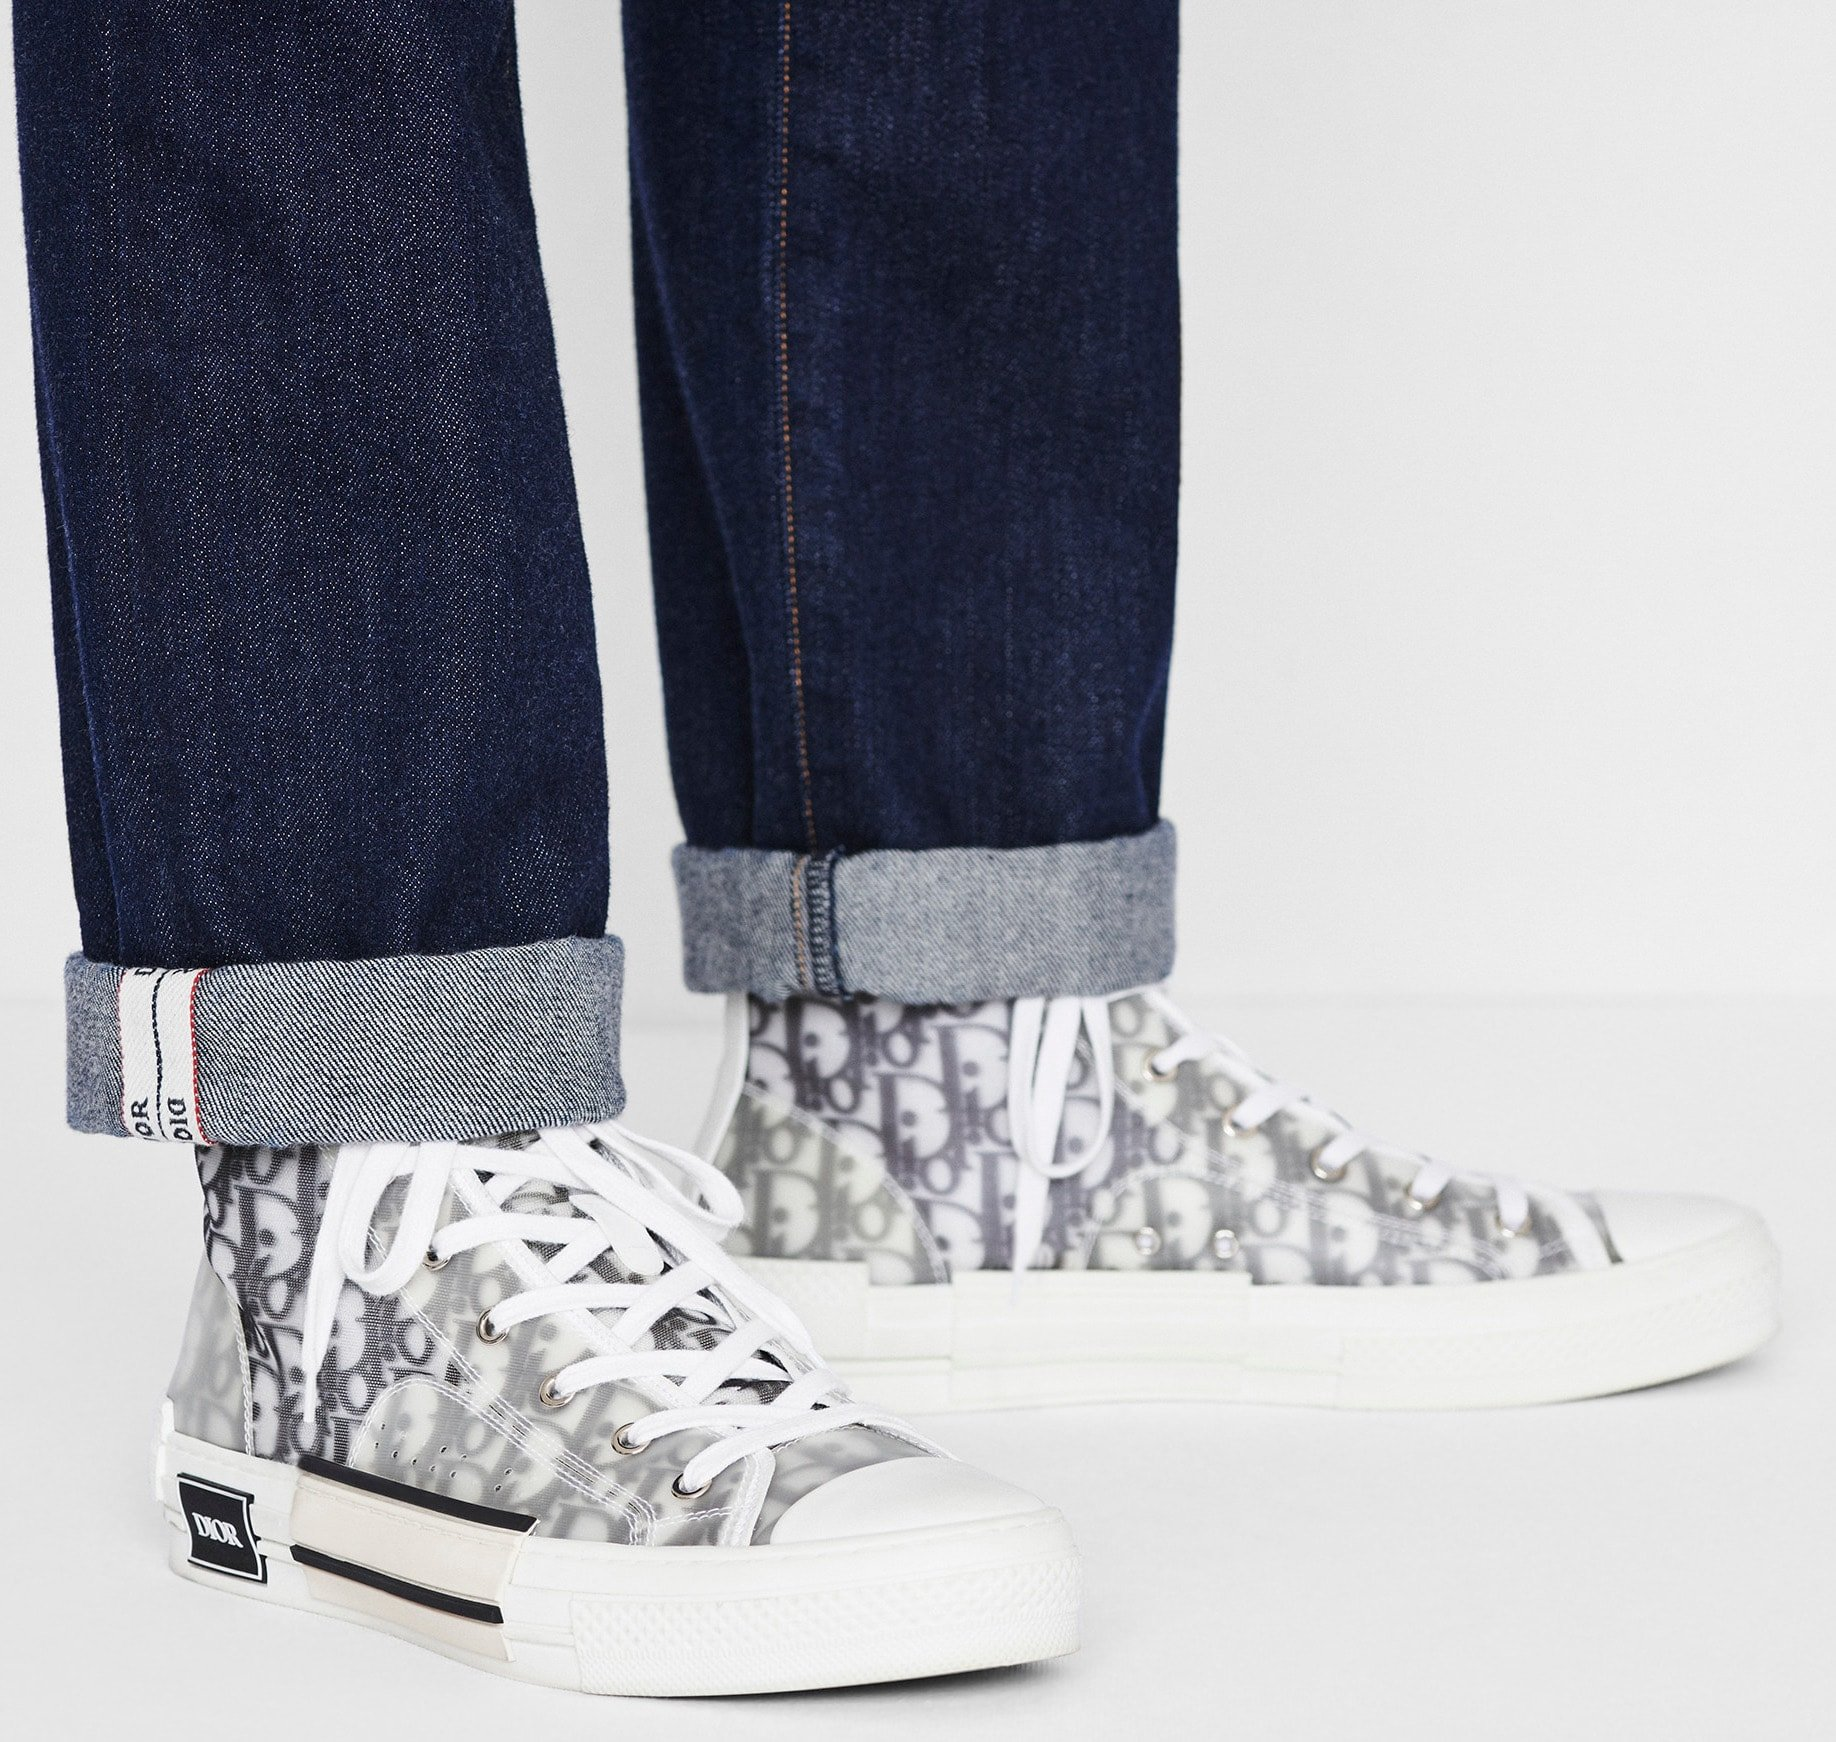 Dior's B23 high-top kicks feature the fashion house's infamous white and black Oblique motif and transparent paneling